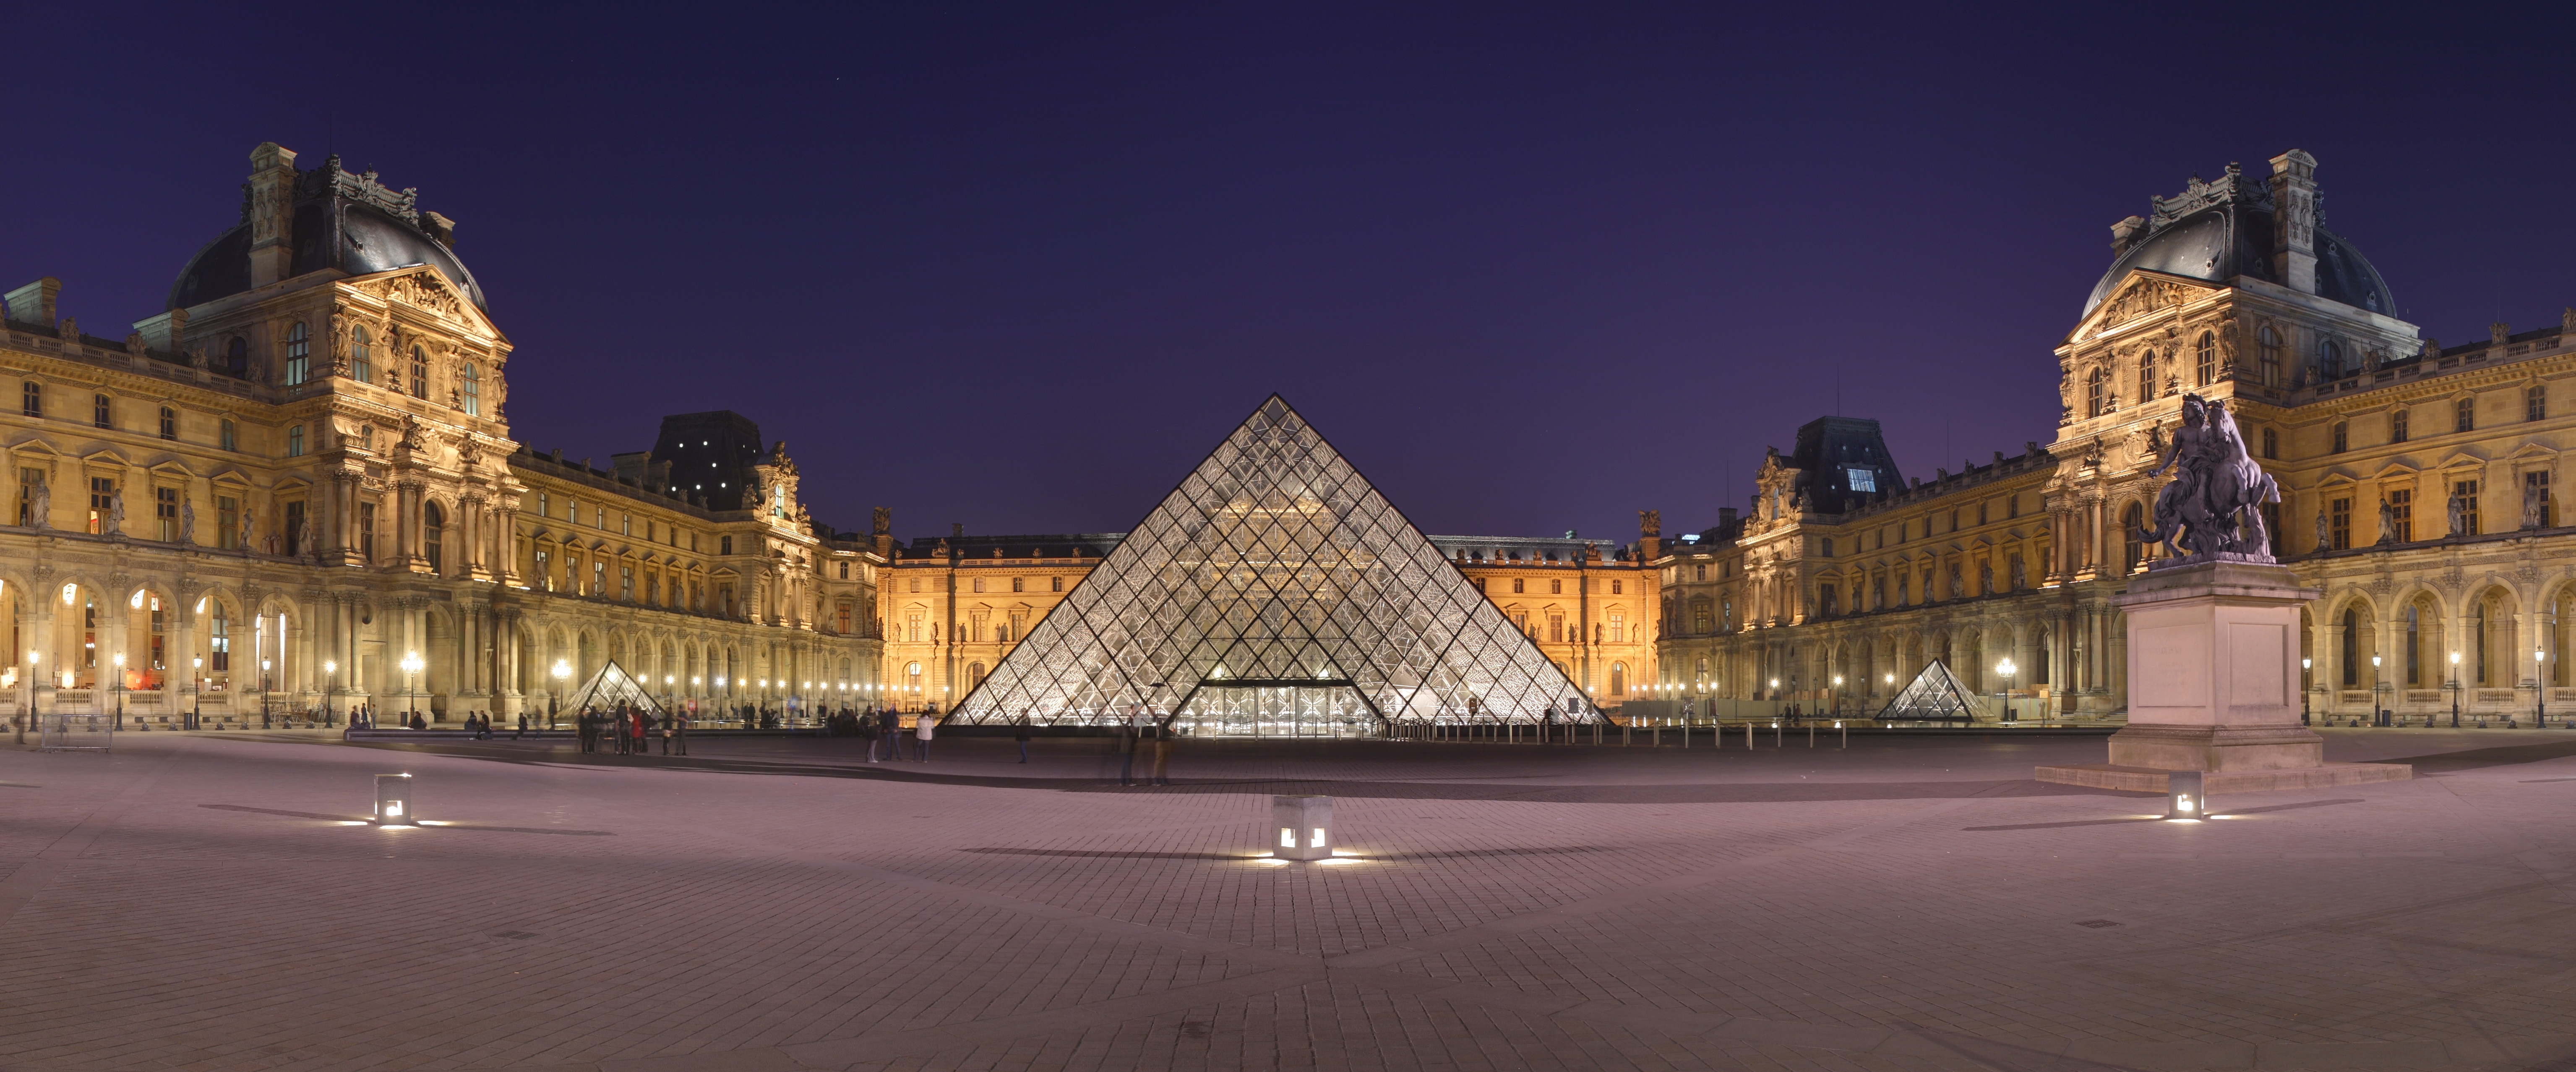 6 Things You May Not Know About the Louvre